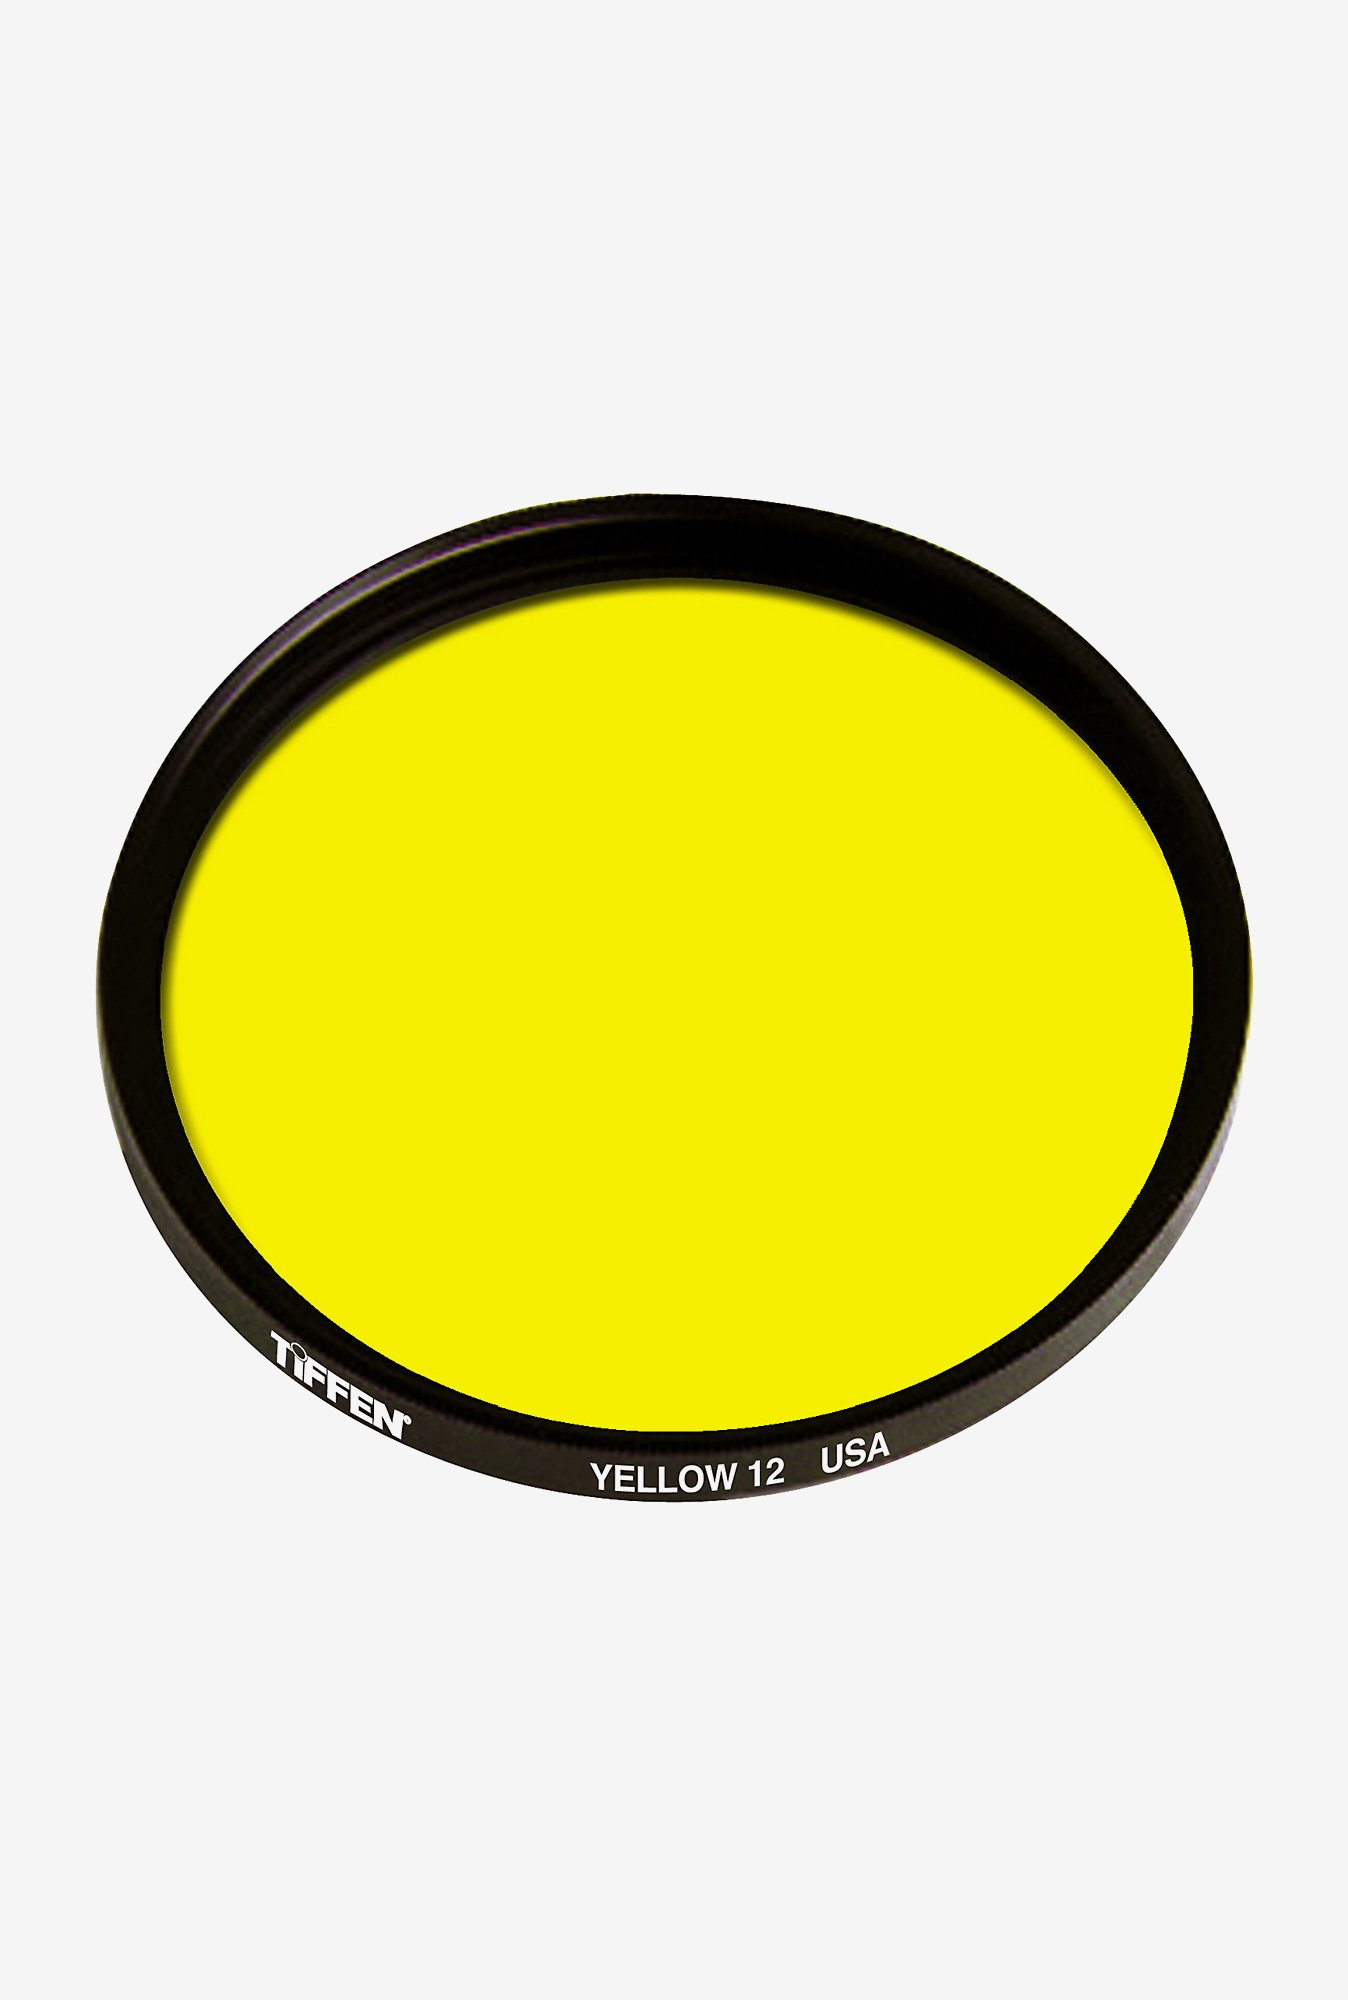 Tiffen 58mm Filter (Yellow 12)